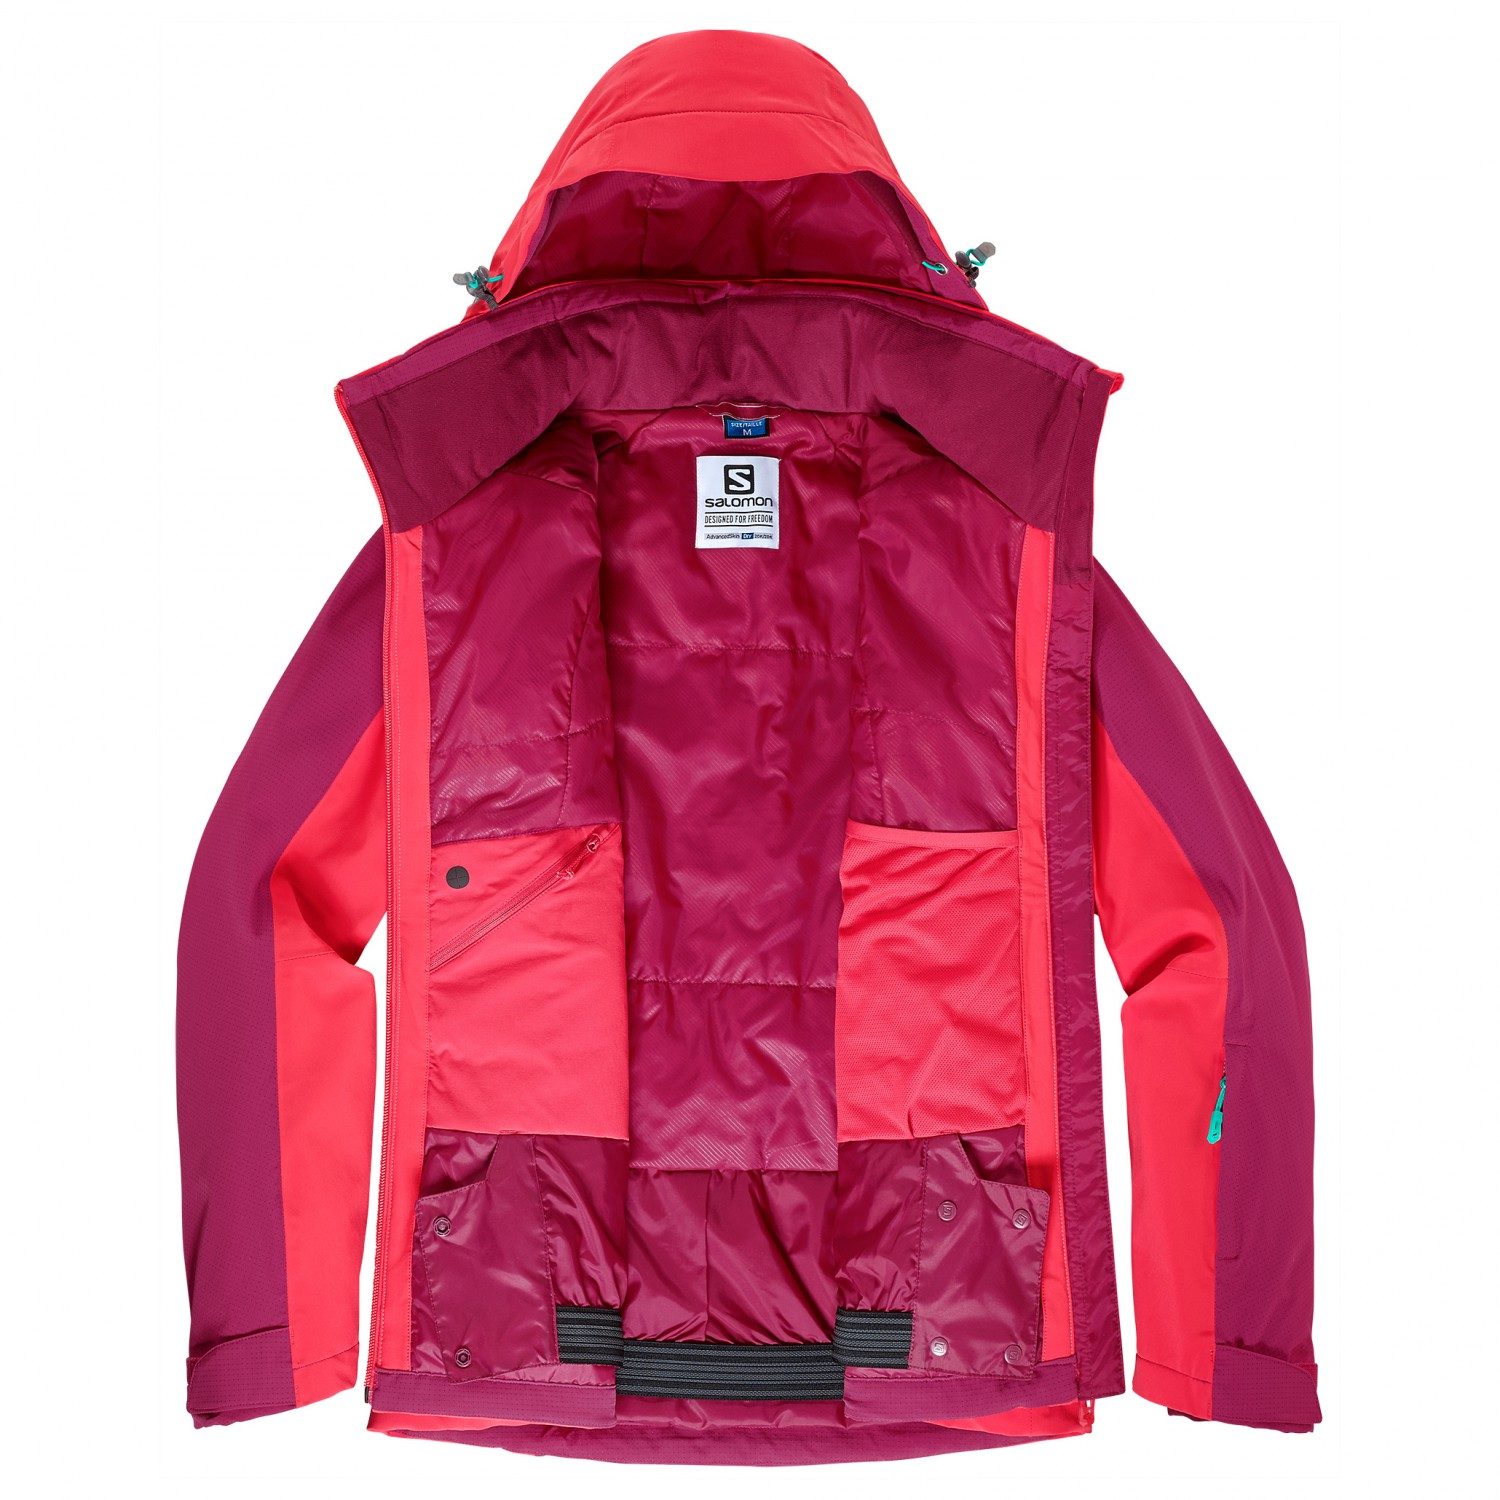 Salomon Brilliant Jacket Skijacke Damen online kaufen